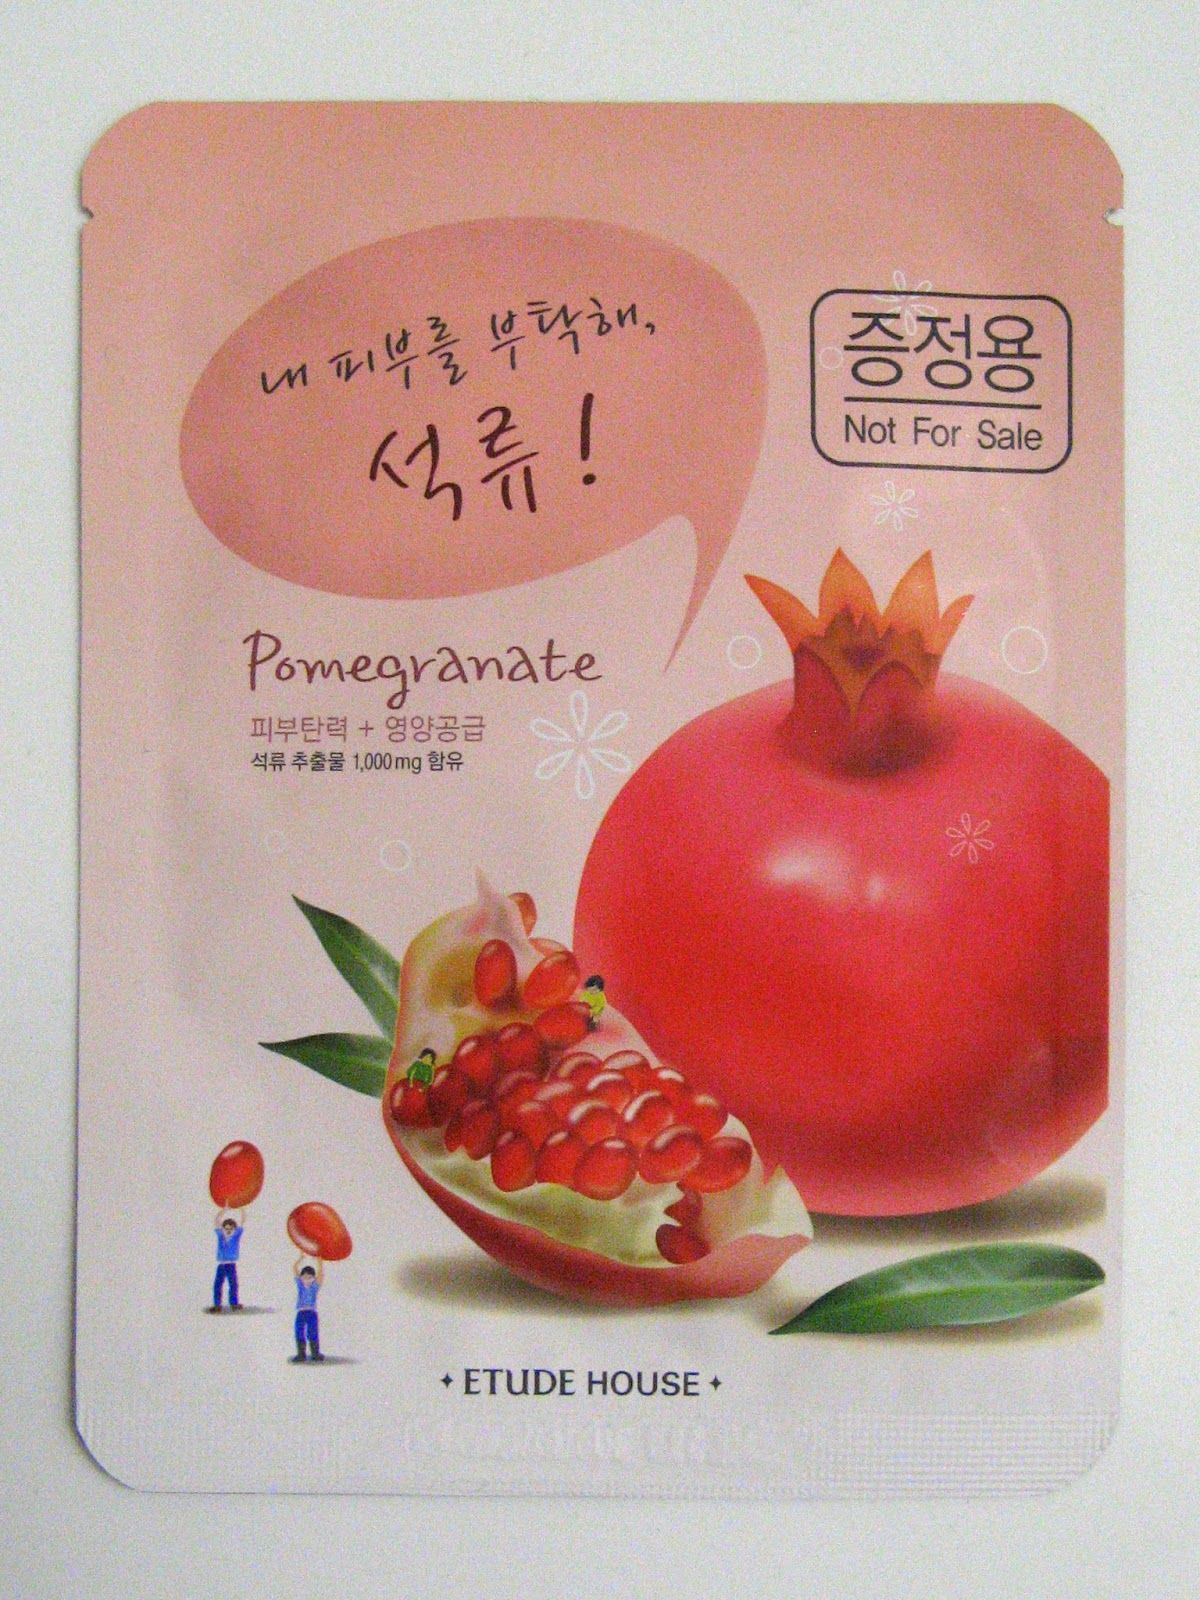 Innocent Culture Blog für asiatischen Lifestyle & koreanischer Kosmetik: Etude House I Need you, Pomegranate! Sheet Mask